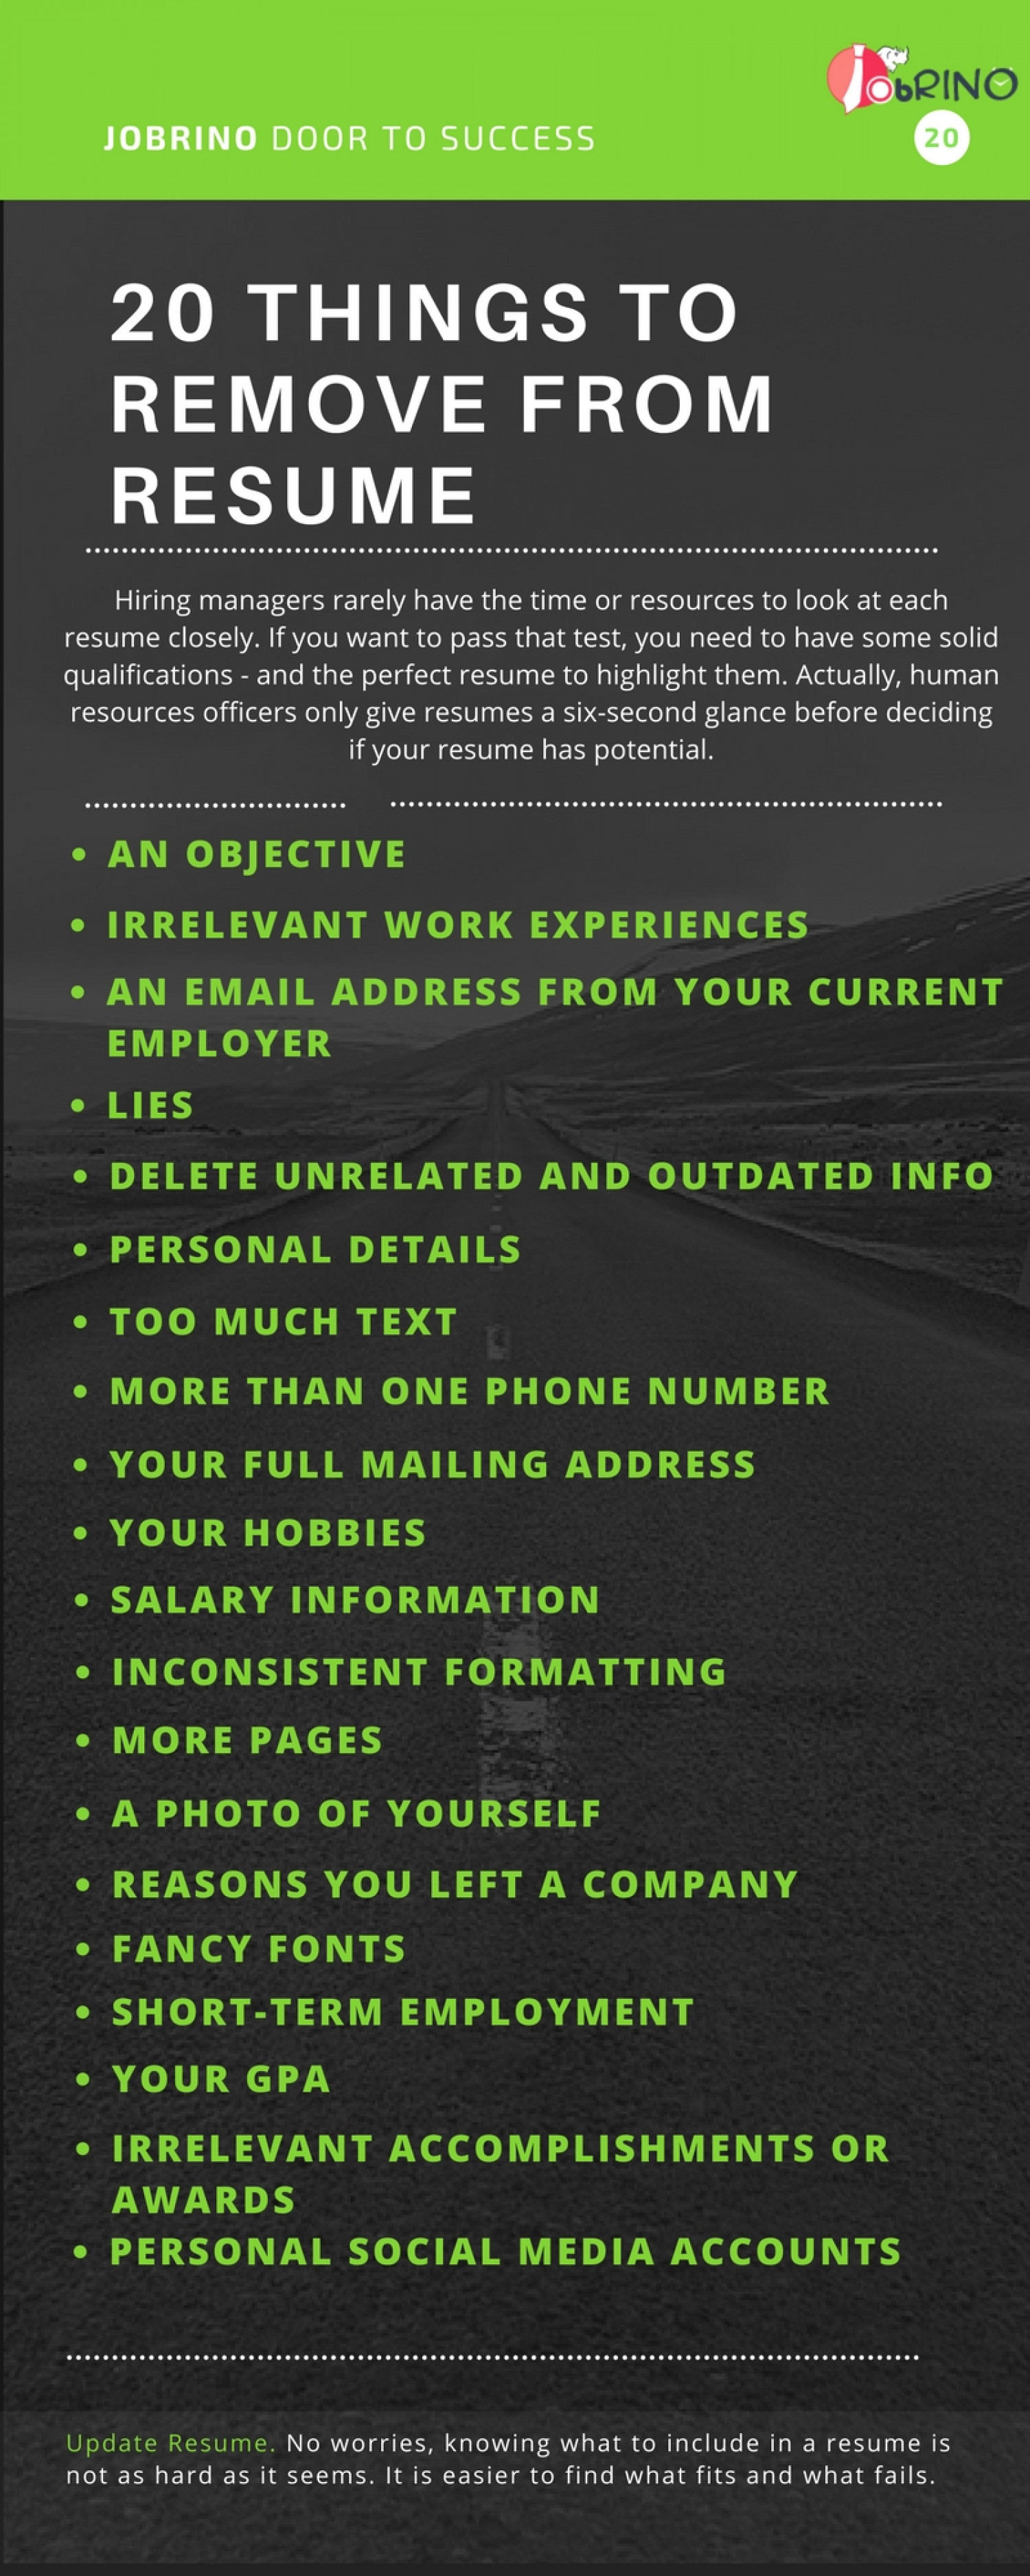 How to write an effective resume - JobRino Infographic